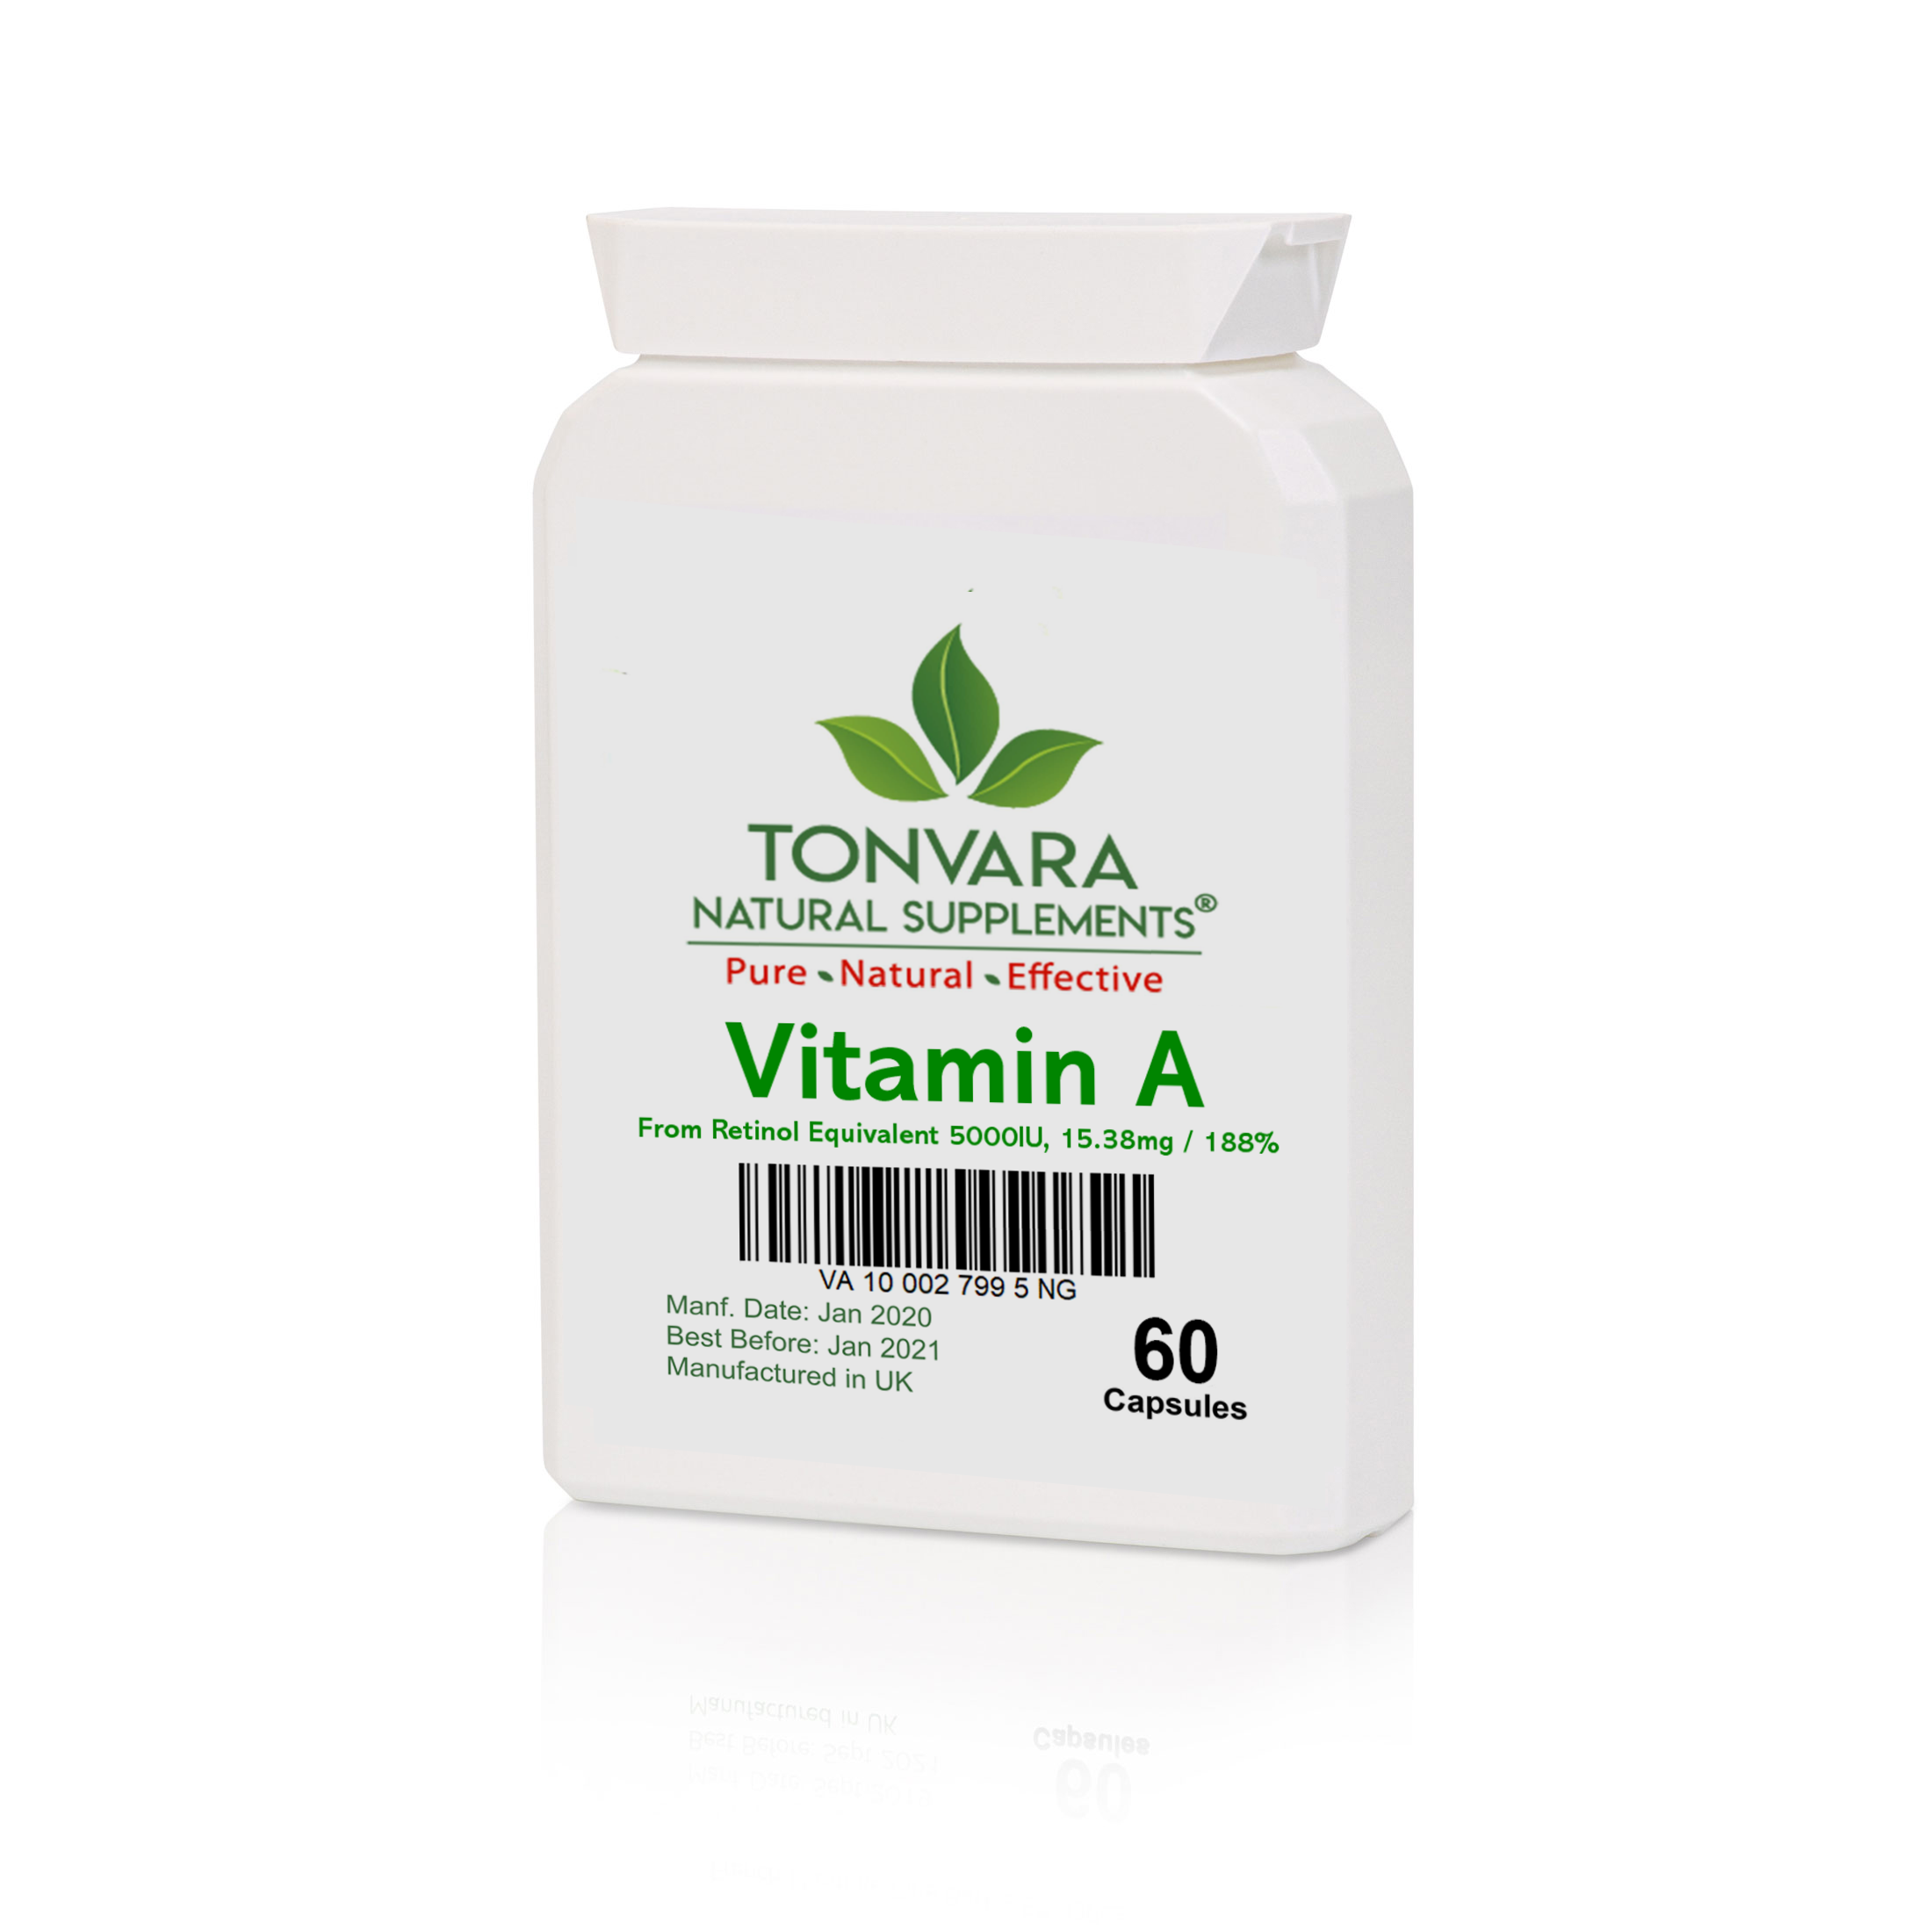 Tonvara Vitamin A (From retinol equivalent to 5000IU)